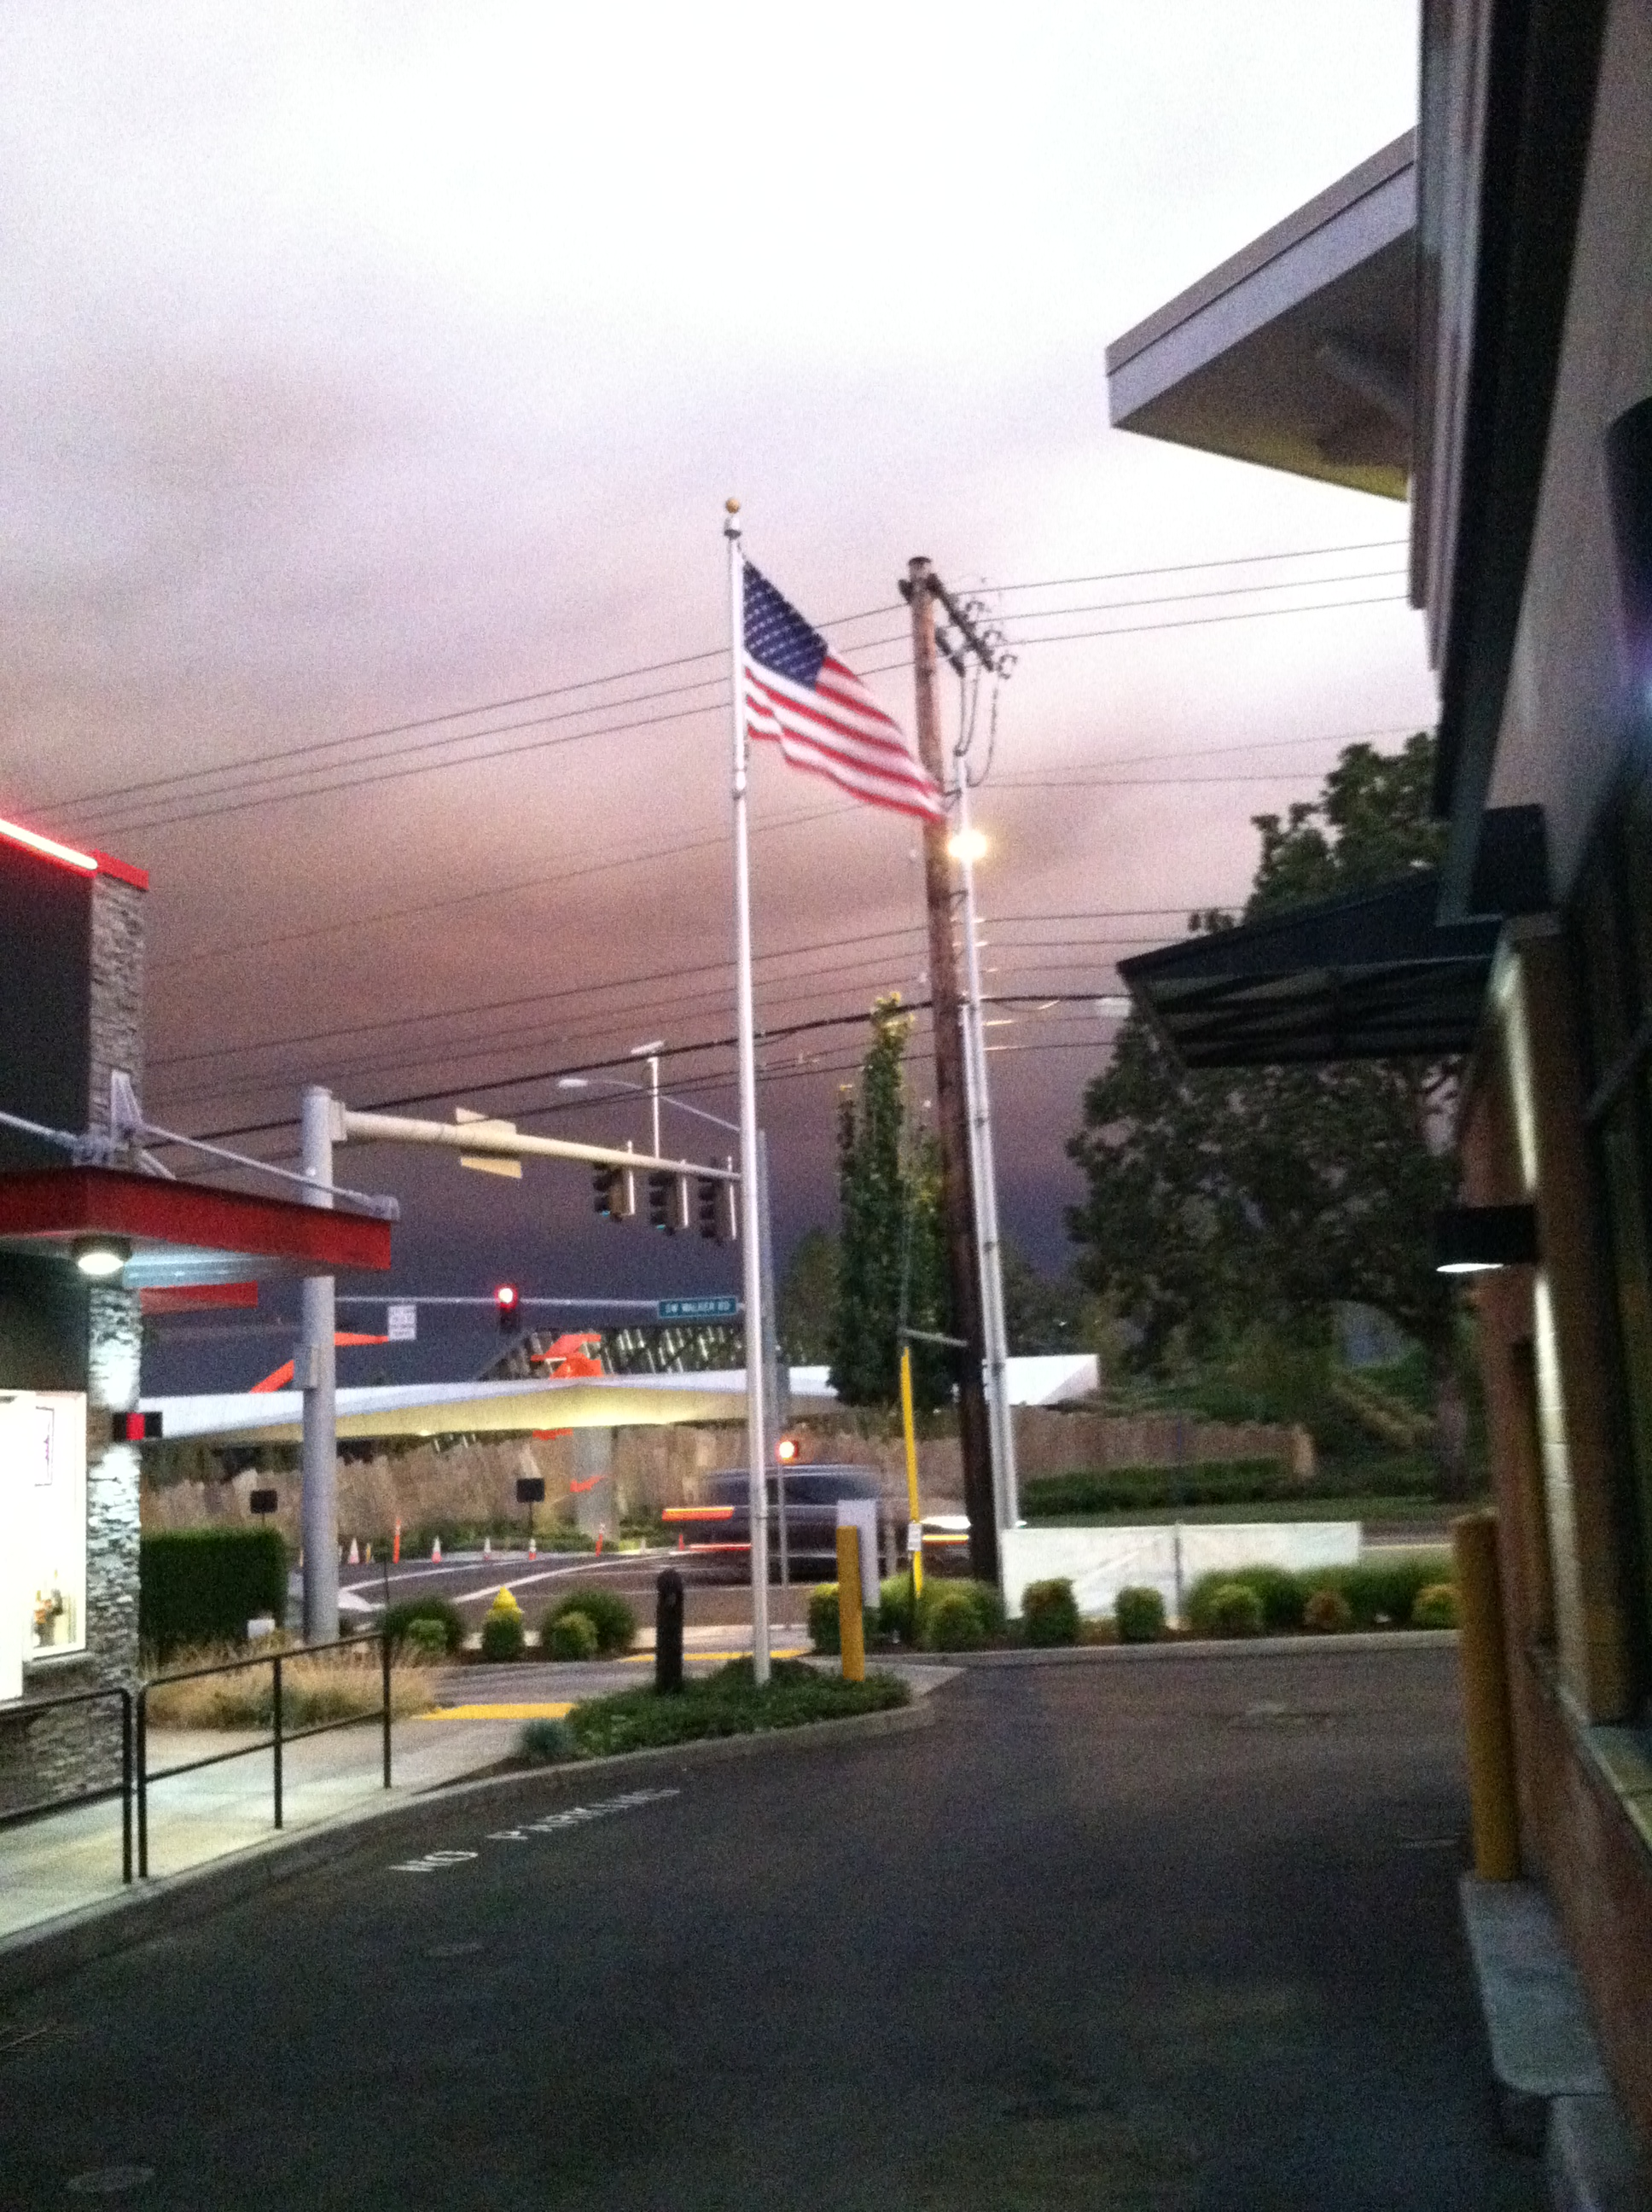 A reg white and blue flag waving in a coffee drive through in front of purple brown skies over a traffic light and Nike entrance with orange Nike logo